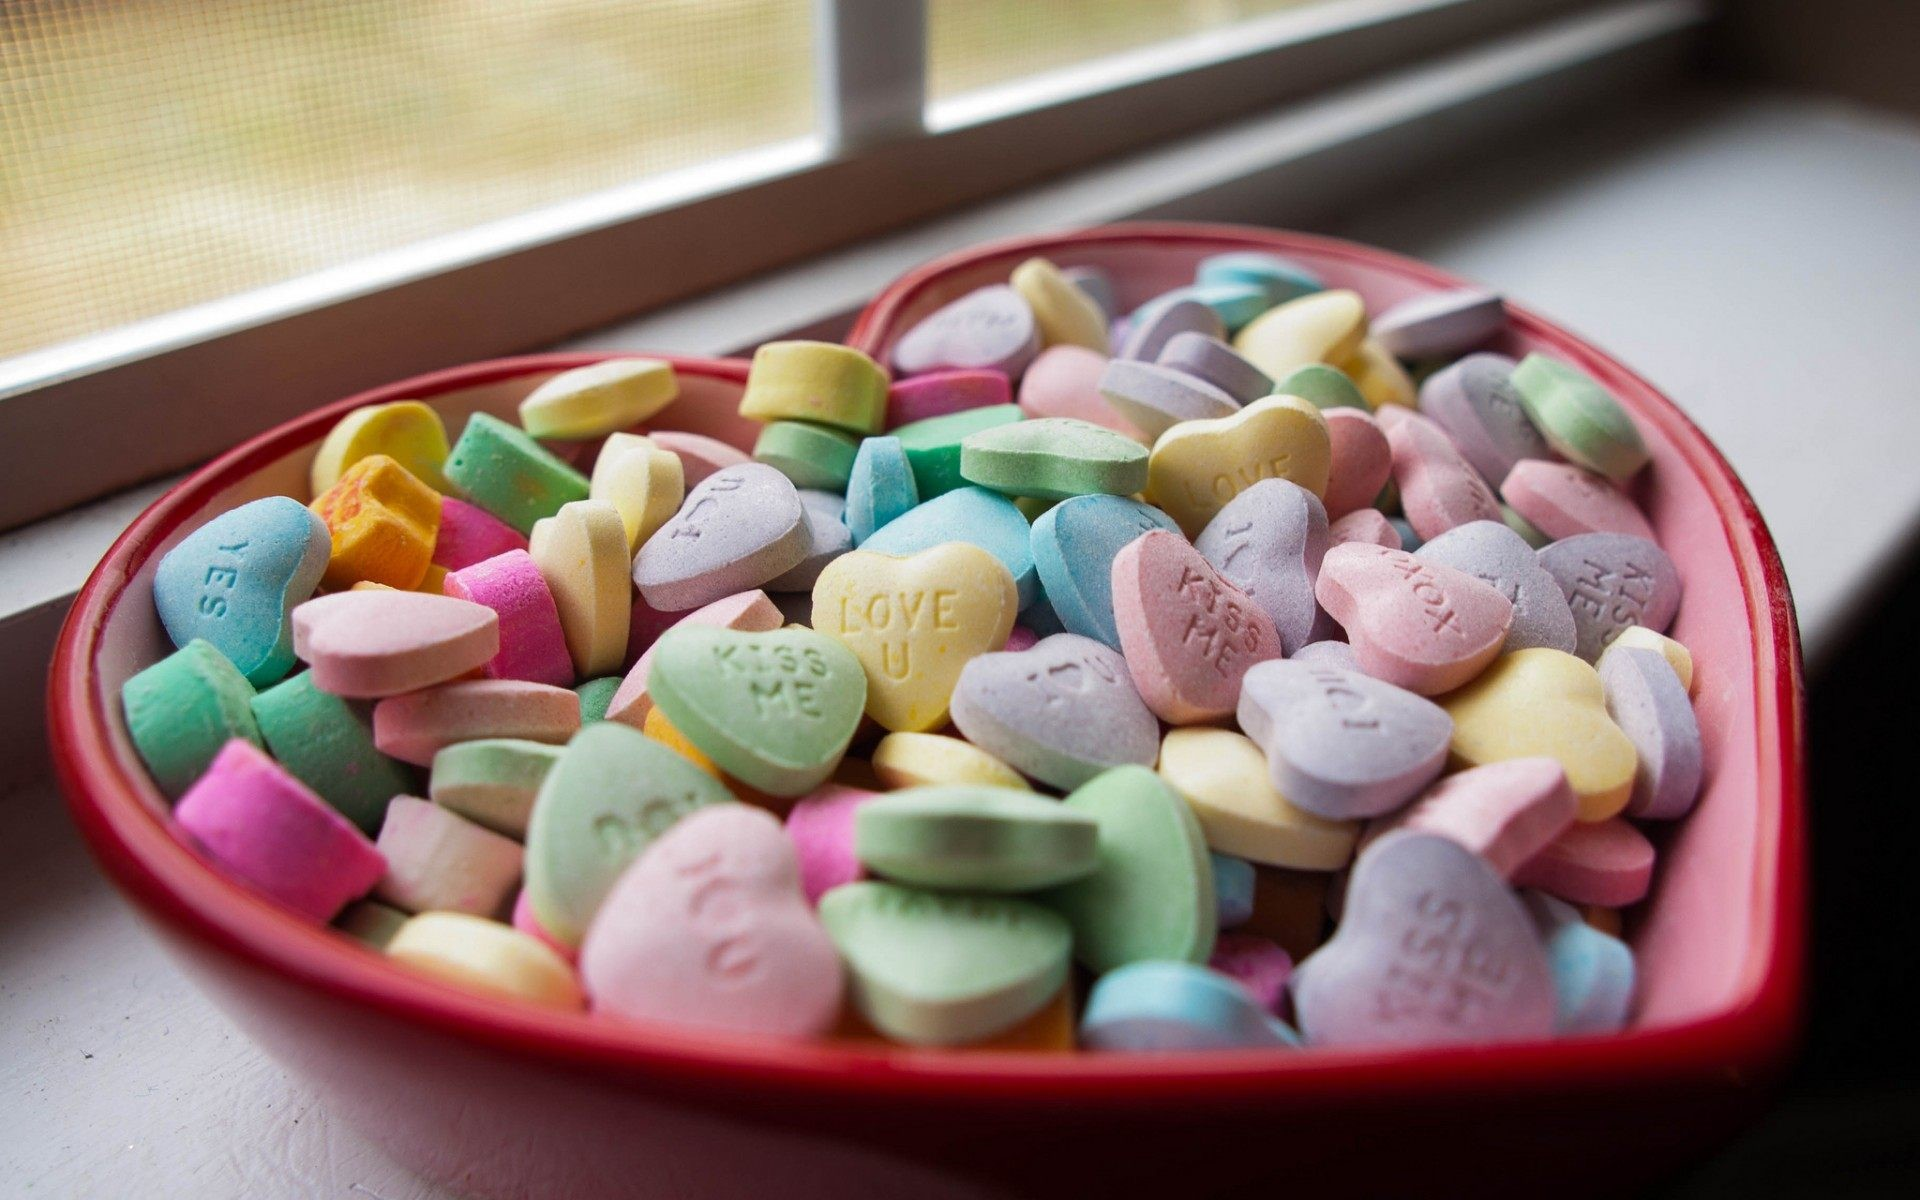 Love Candy Hearts Wallpaper